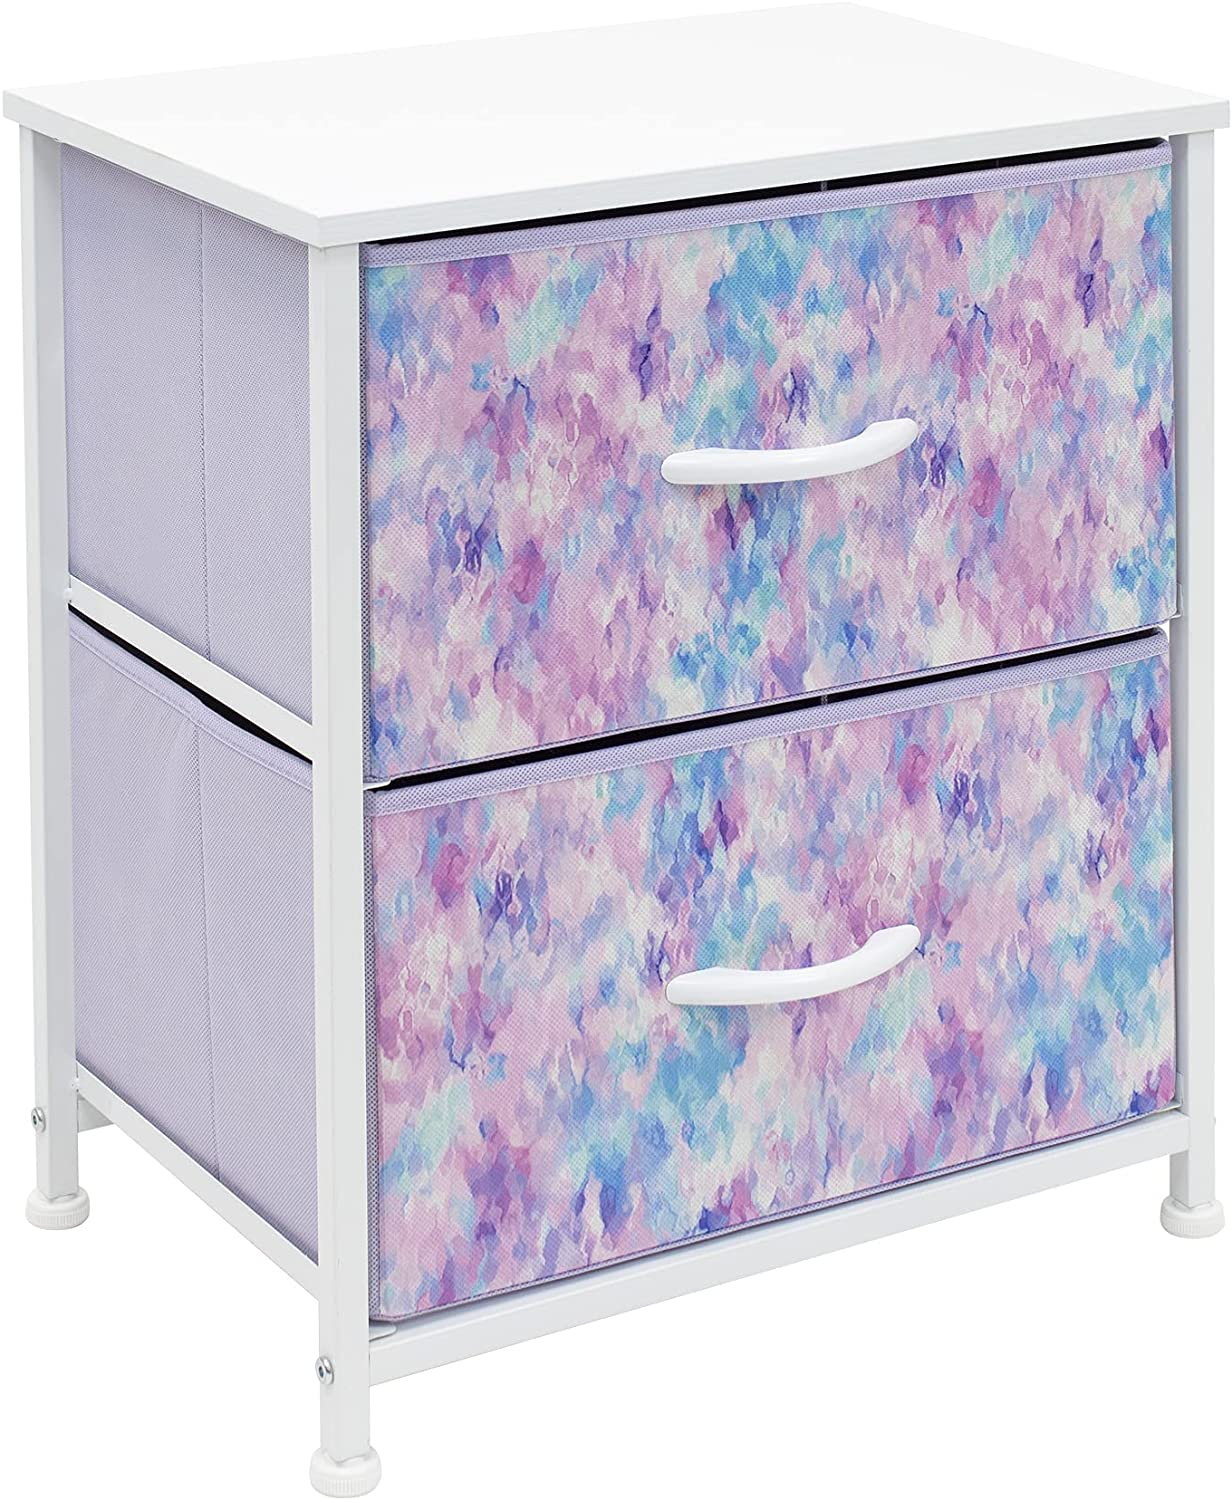 Sorbus Nightstand with 2 Drawers - Bedside Furniture & Accent End Table Chest for Home, Bedroom, Office, College Dorm, Steel Frame, Wood Top, Easy Pull Fabric Bins (2-Drawer, Blue/Pink/Purple)